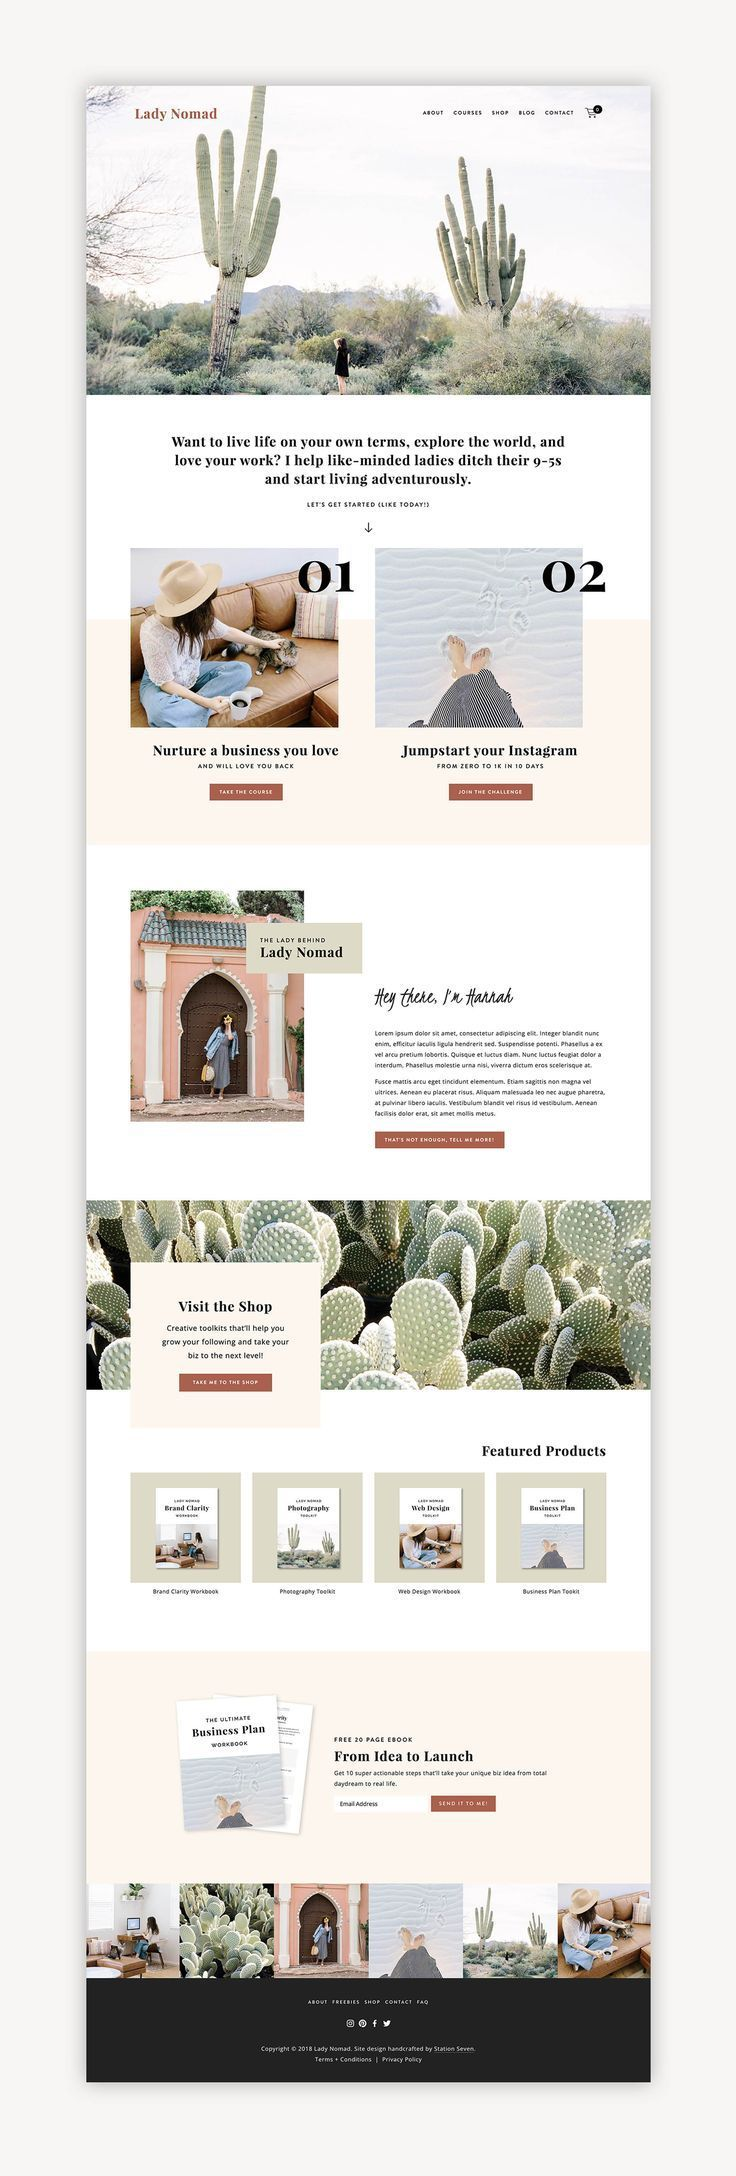 Lady Nomad Squarespace Kit Station Seven Squarespace Templates Wordpress Themes And Free Resources For Creative Entrepreneurs Web Layout Design Website Design Layout Website Design Inspiration